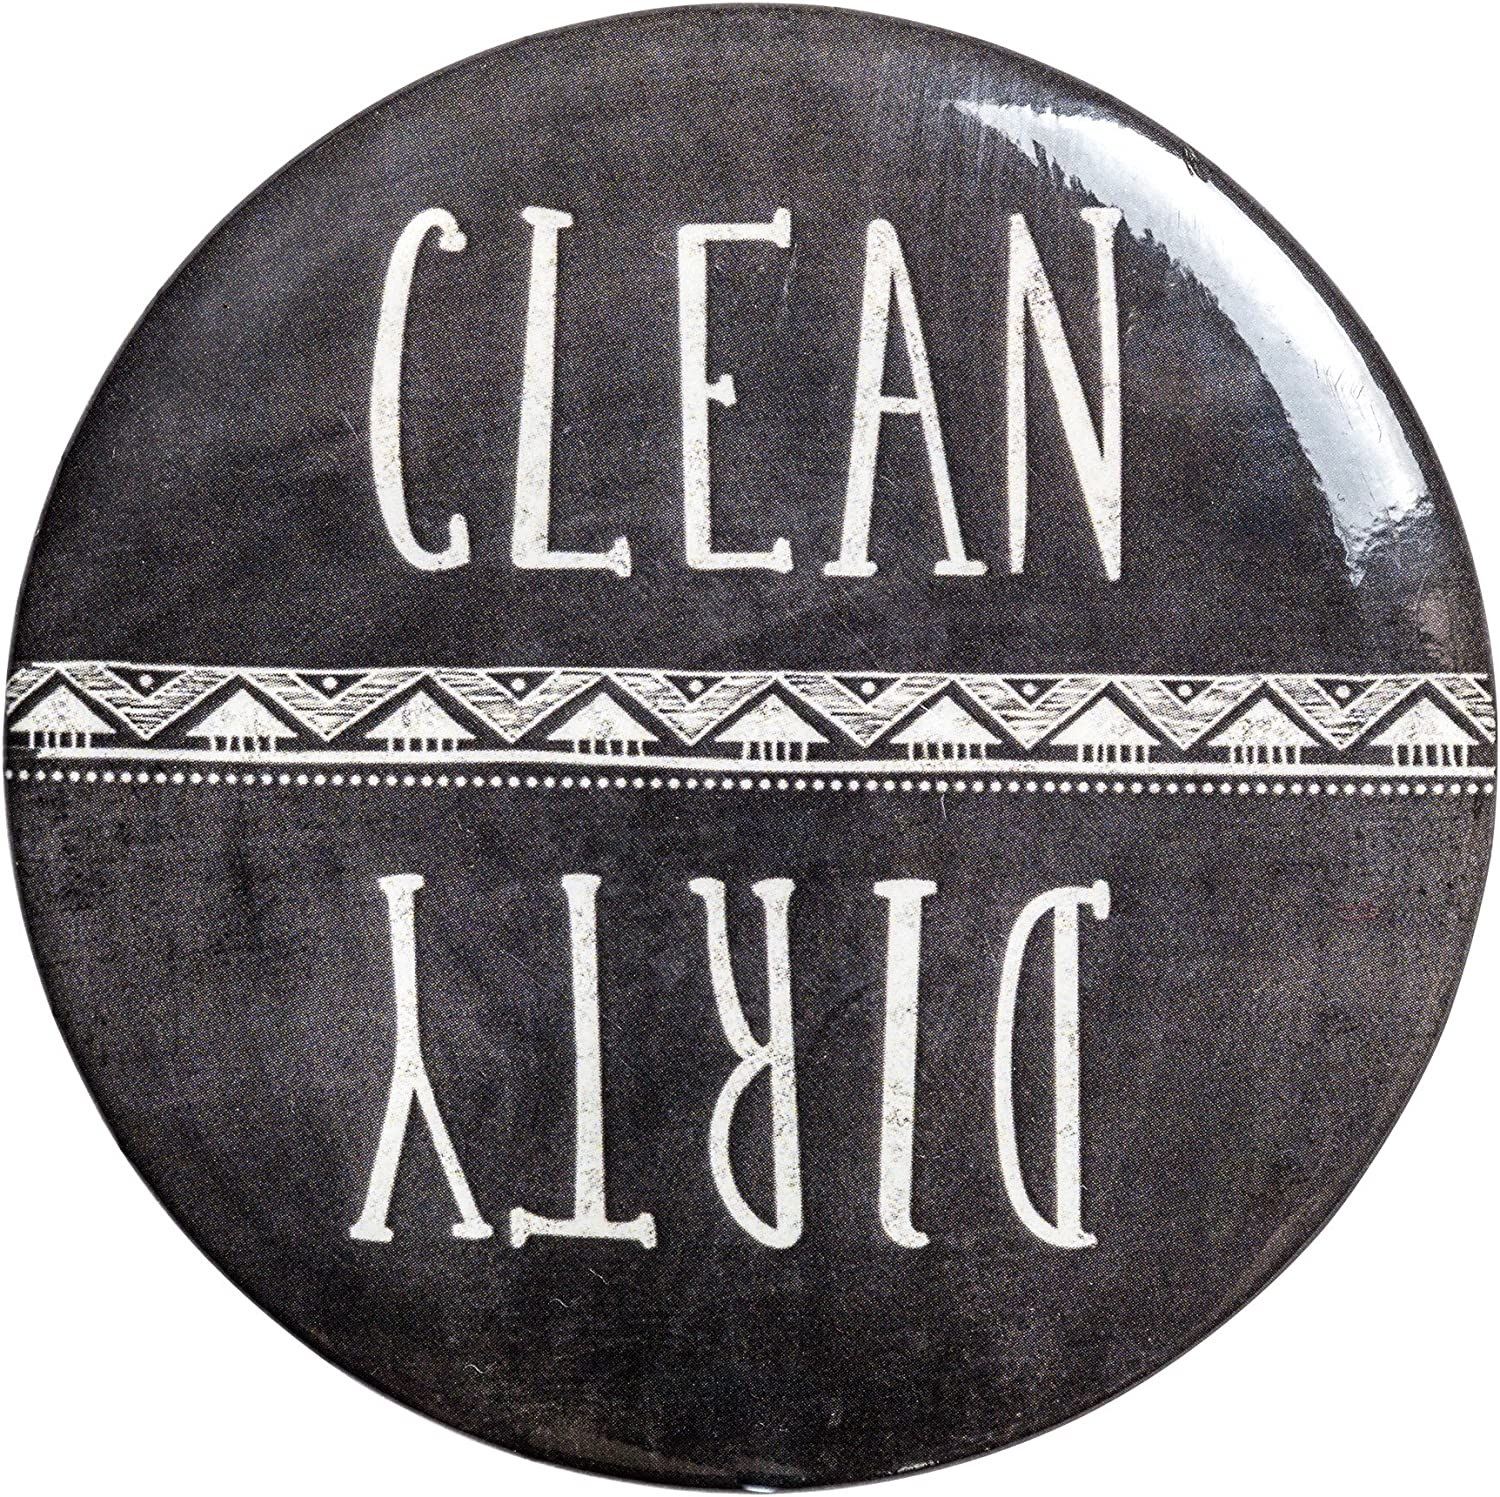 Clean Dirty Louisville-Jefferson Special Campaign County Mall Dishwasher Magnet Sign Chalkboard